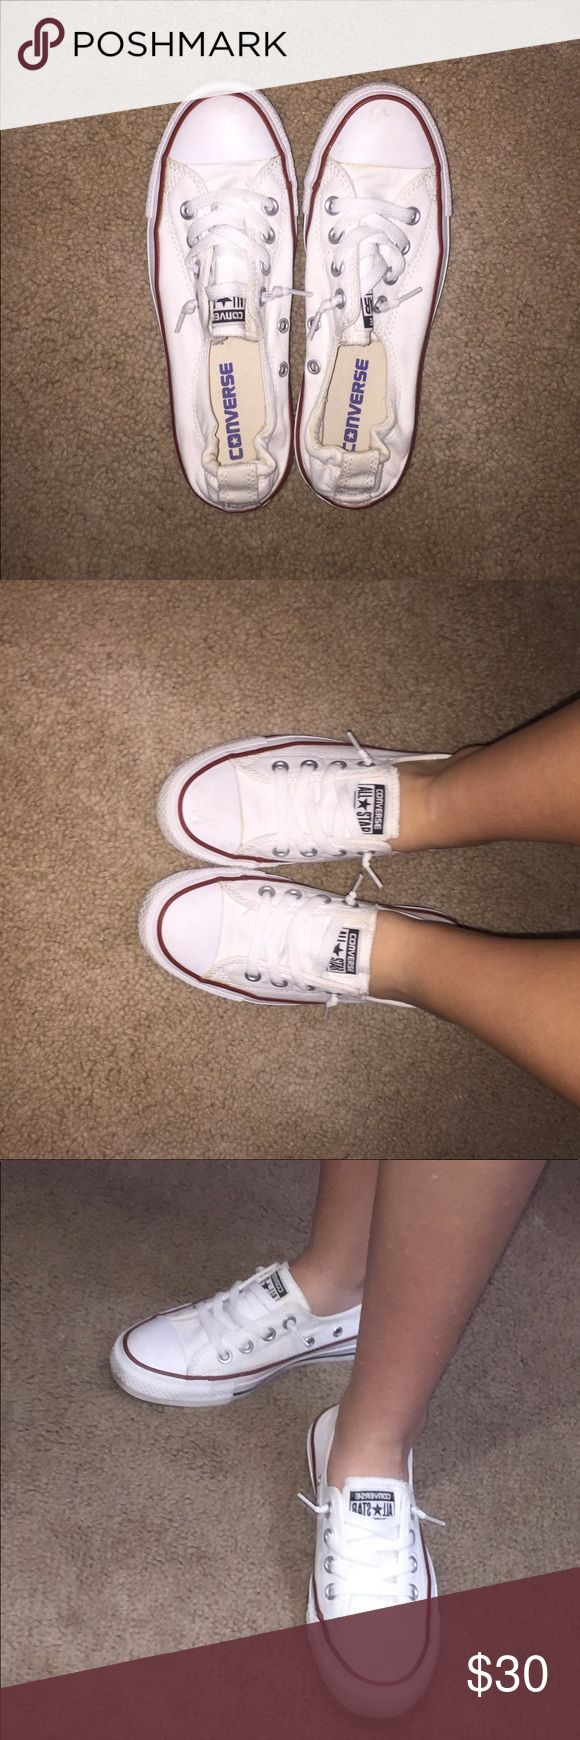 Converse (slip on) Slip on white Chuck Taylor Converse Converse Shoes Sneakers